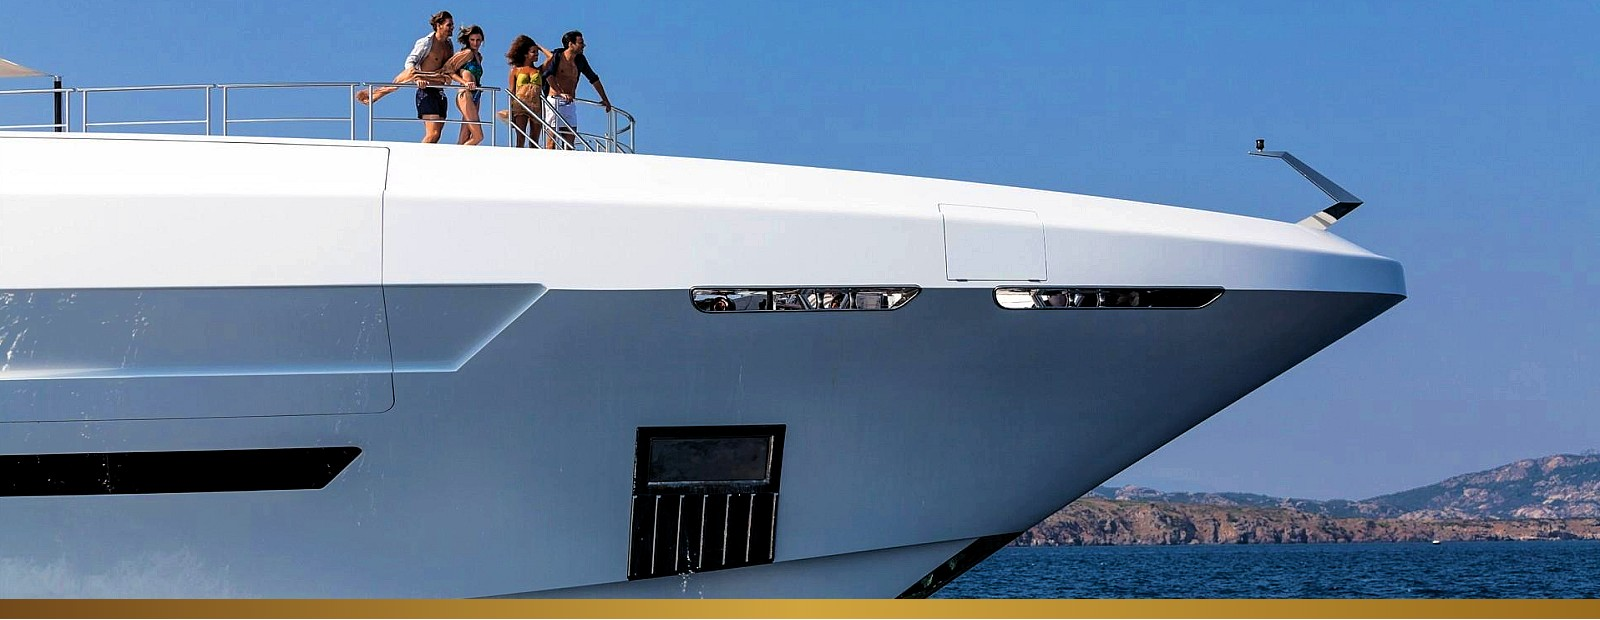 Luxury Yachts Charter in Greece & Monaco - HELLAS YACHTING